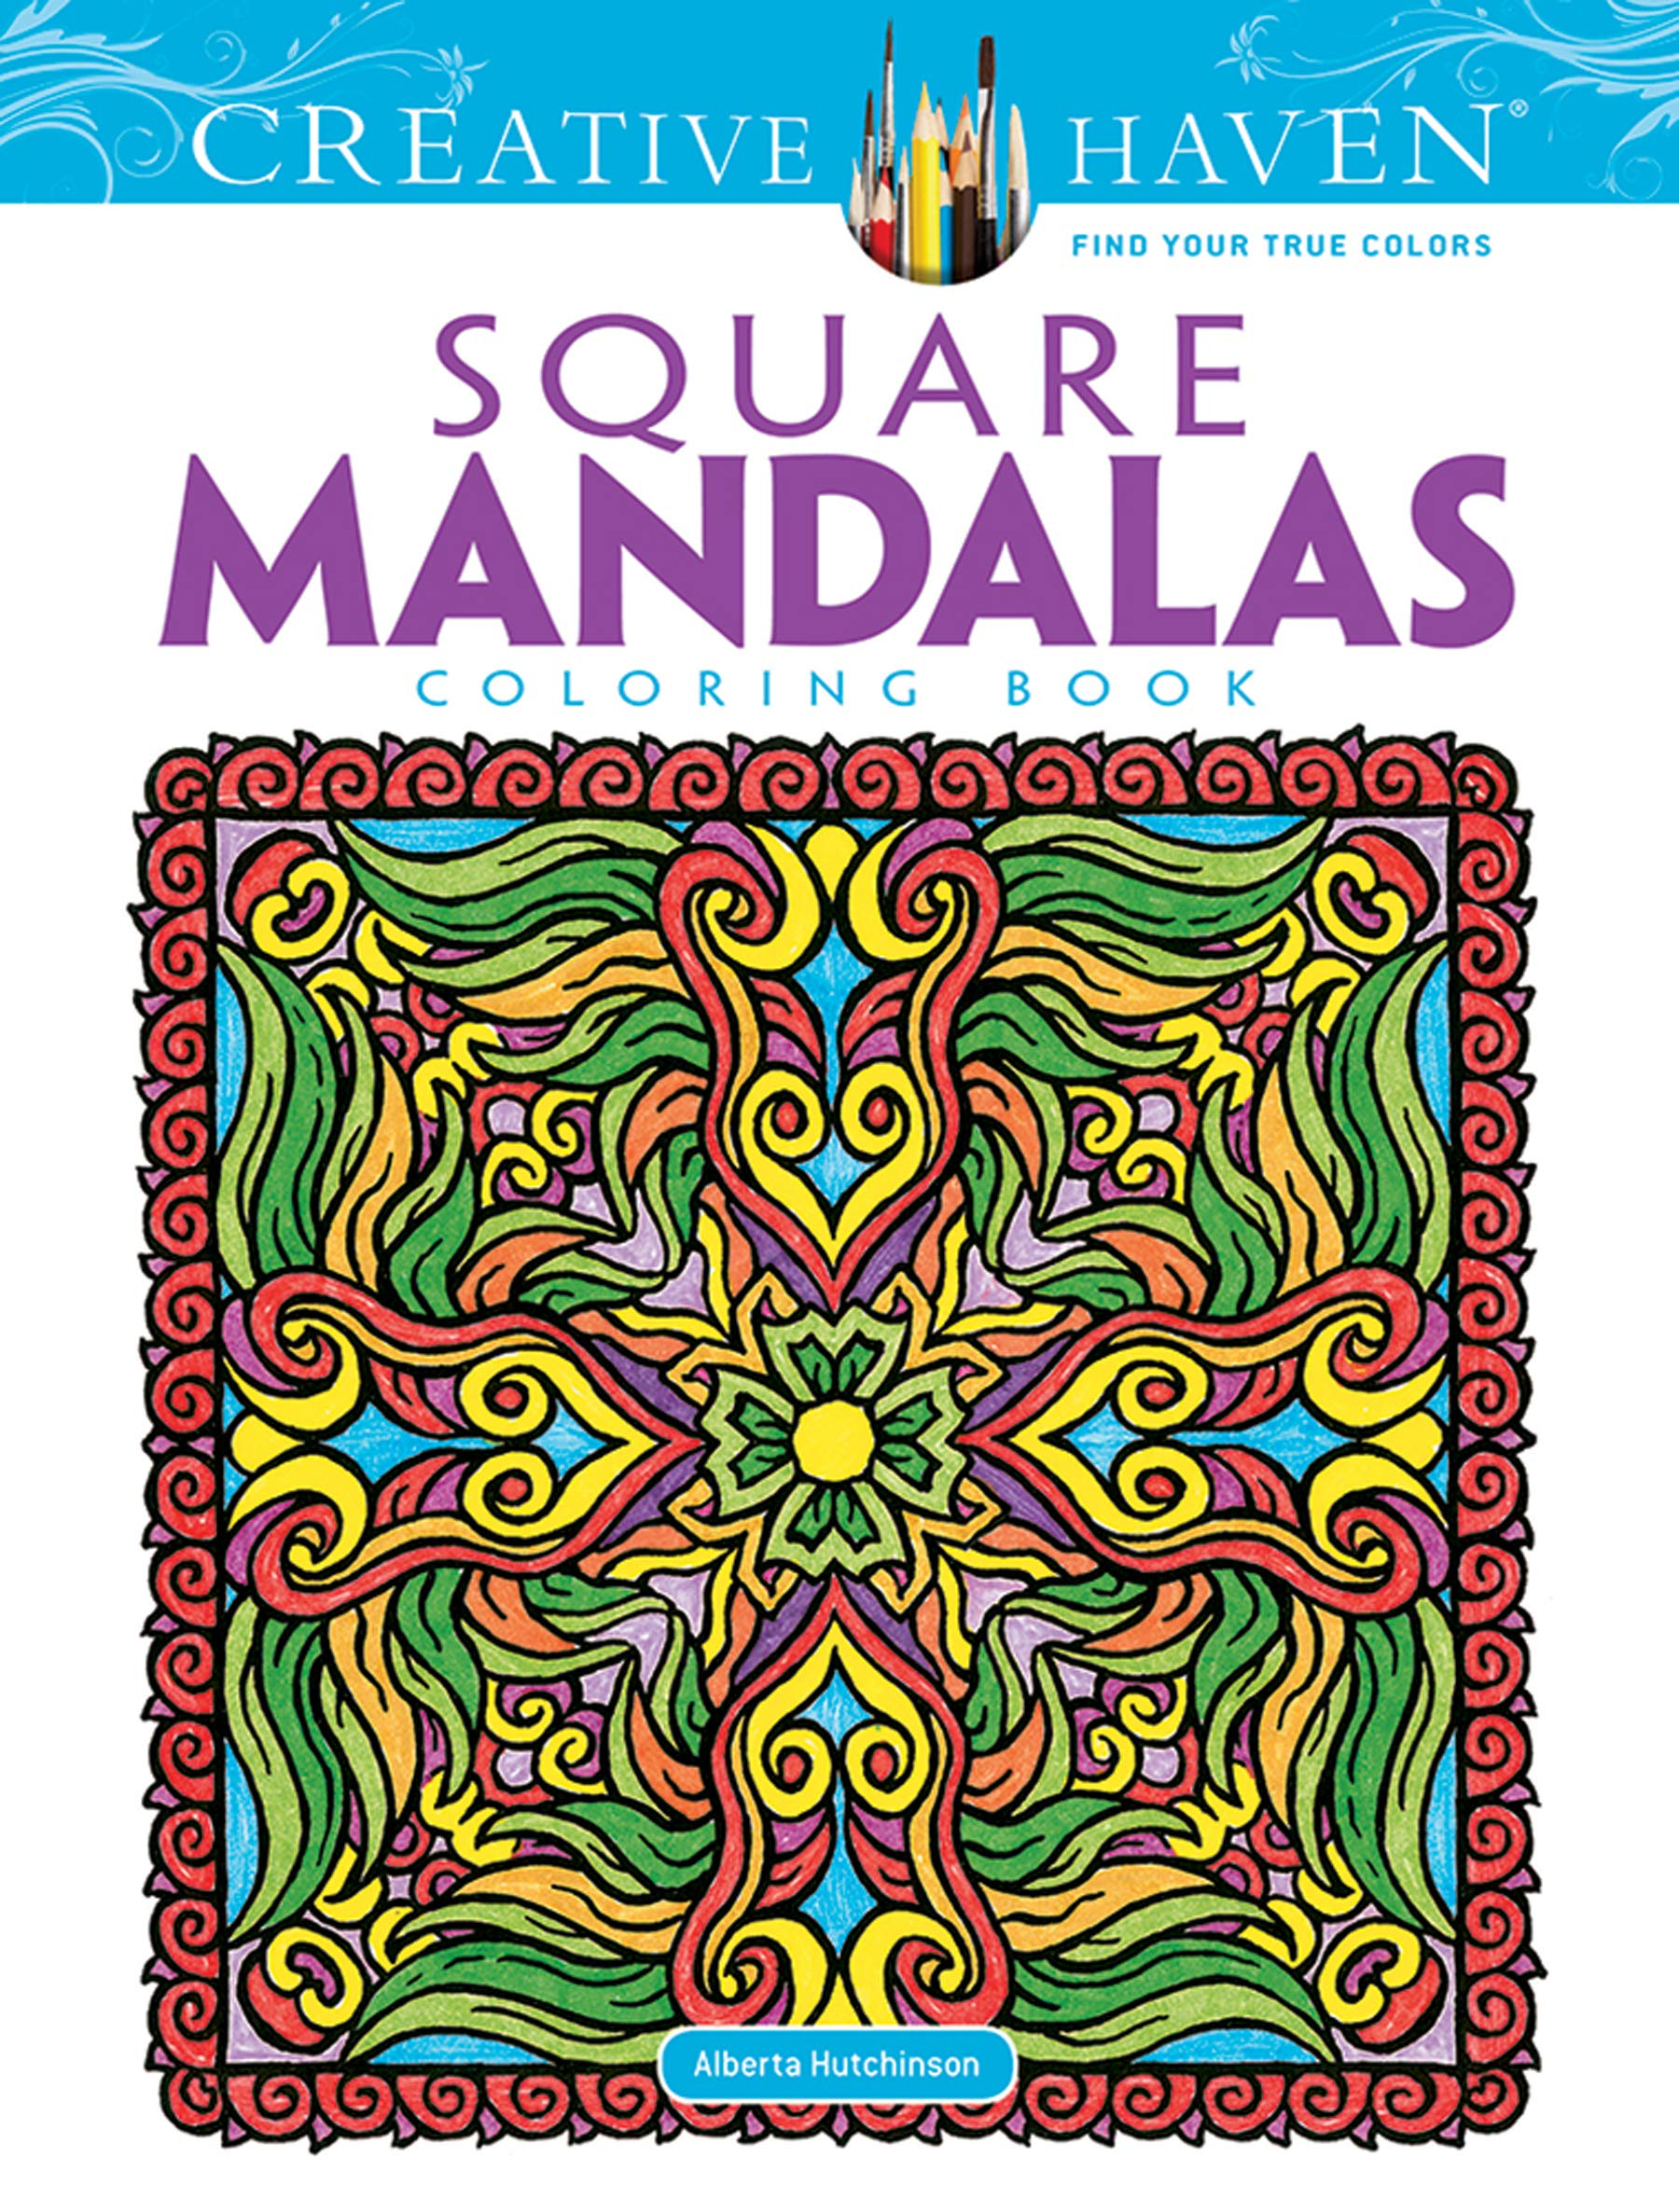 Creative Haven Square Mandalas Coloring Book (Creative Haven Coloring Books):  Alberta Hutchinson, Creative Haven: 9780486490946: Amazon.com: Books